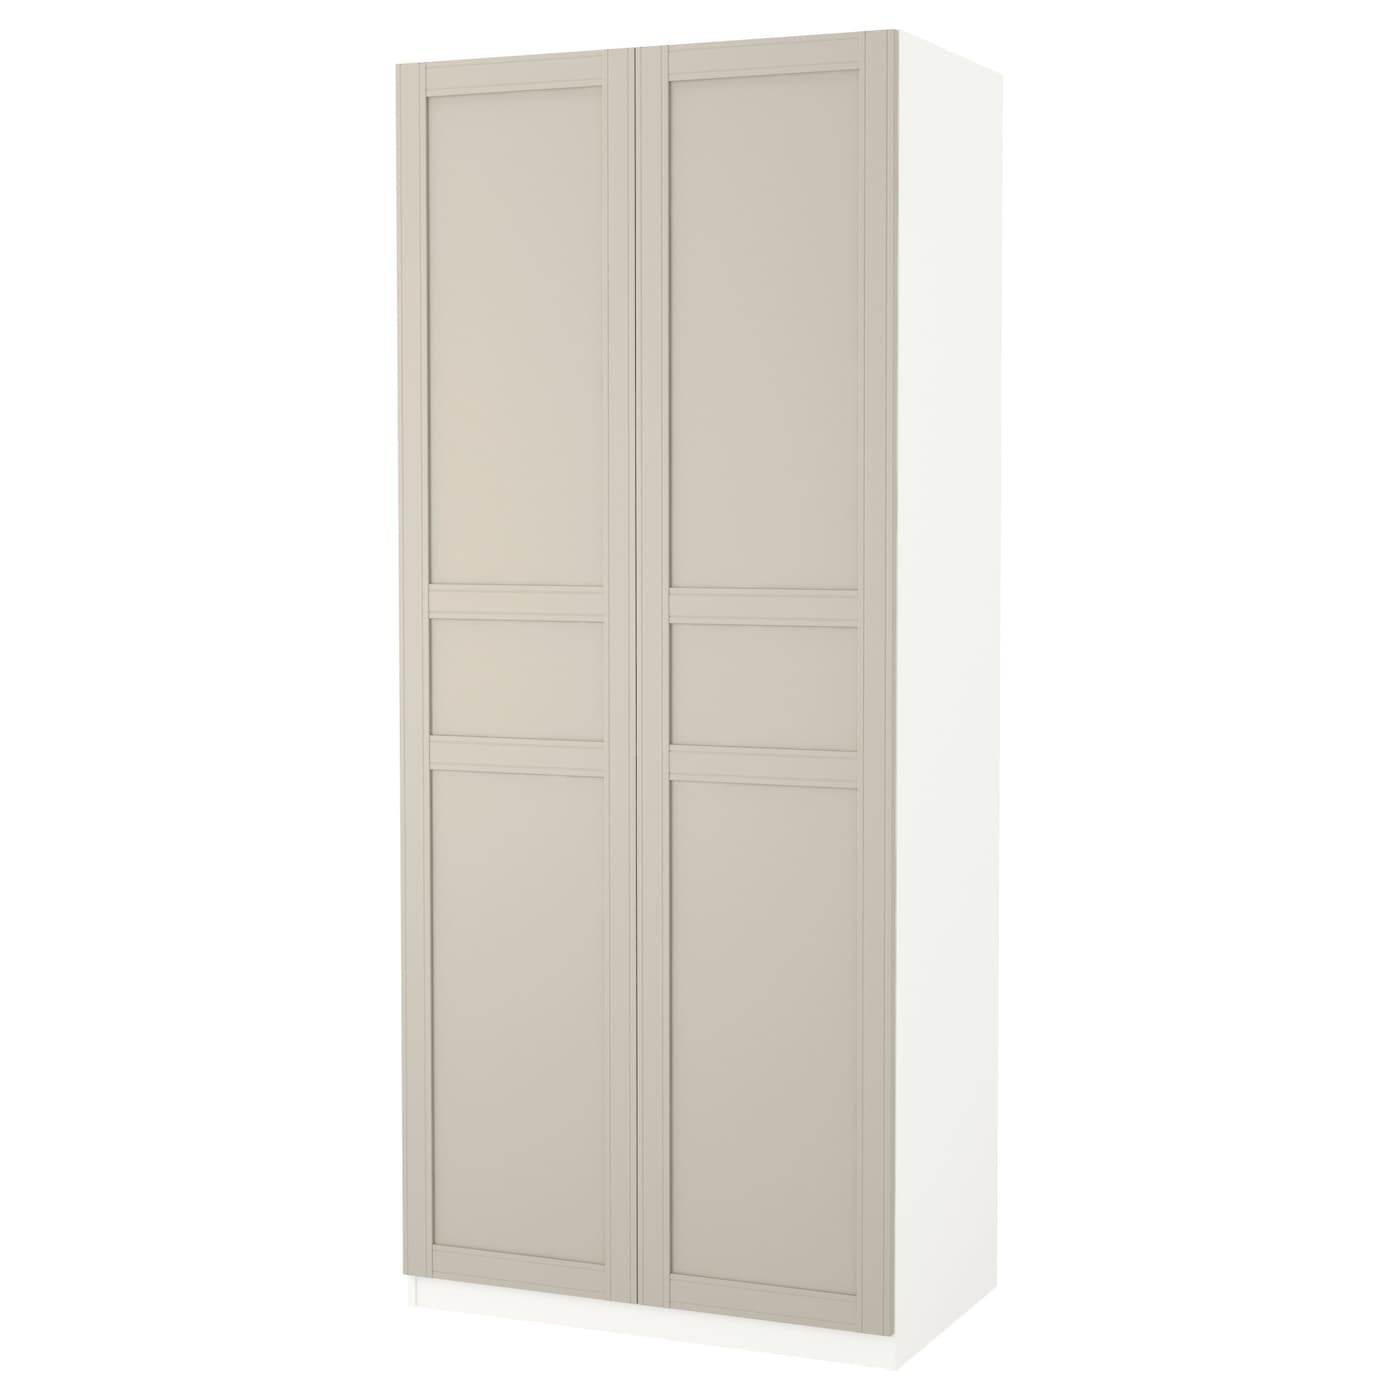 pax wardrobe white flisberget light beige 100x60x236 cm ikea. Black Bedroom Furniture Sets. Home Design Ideas